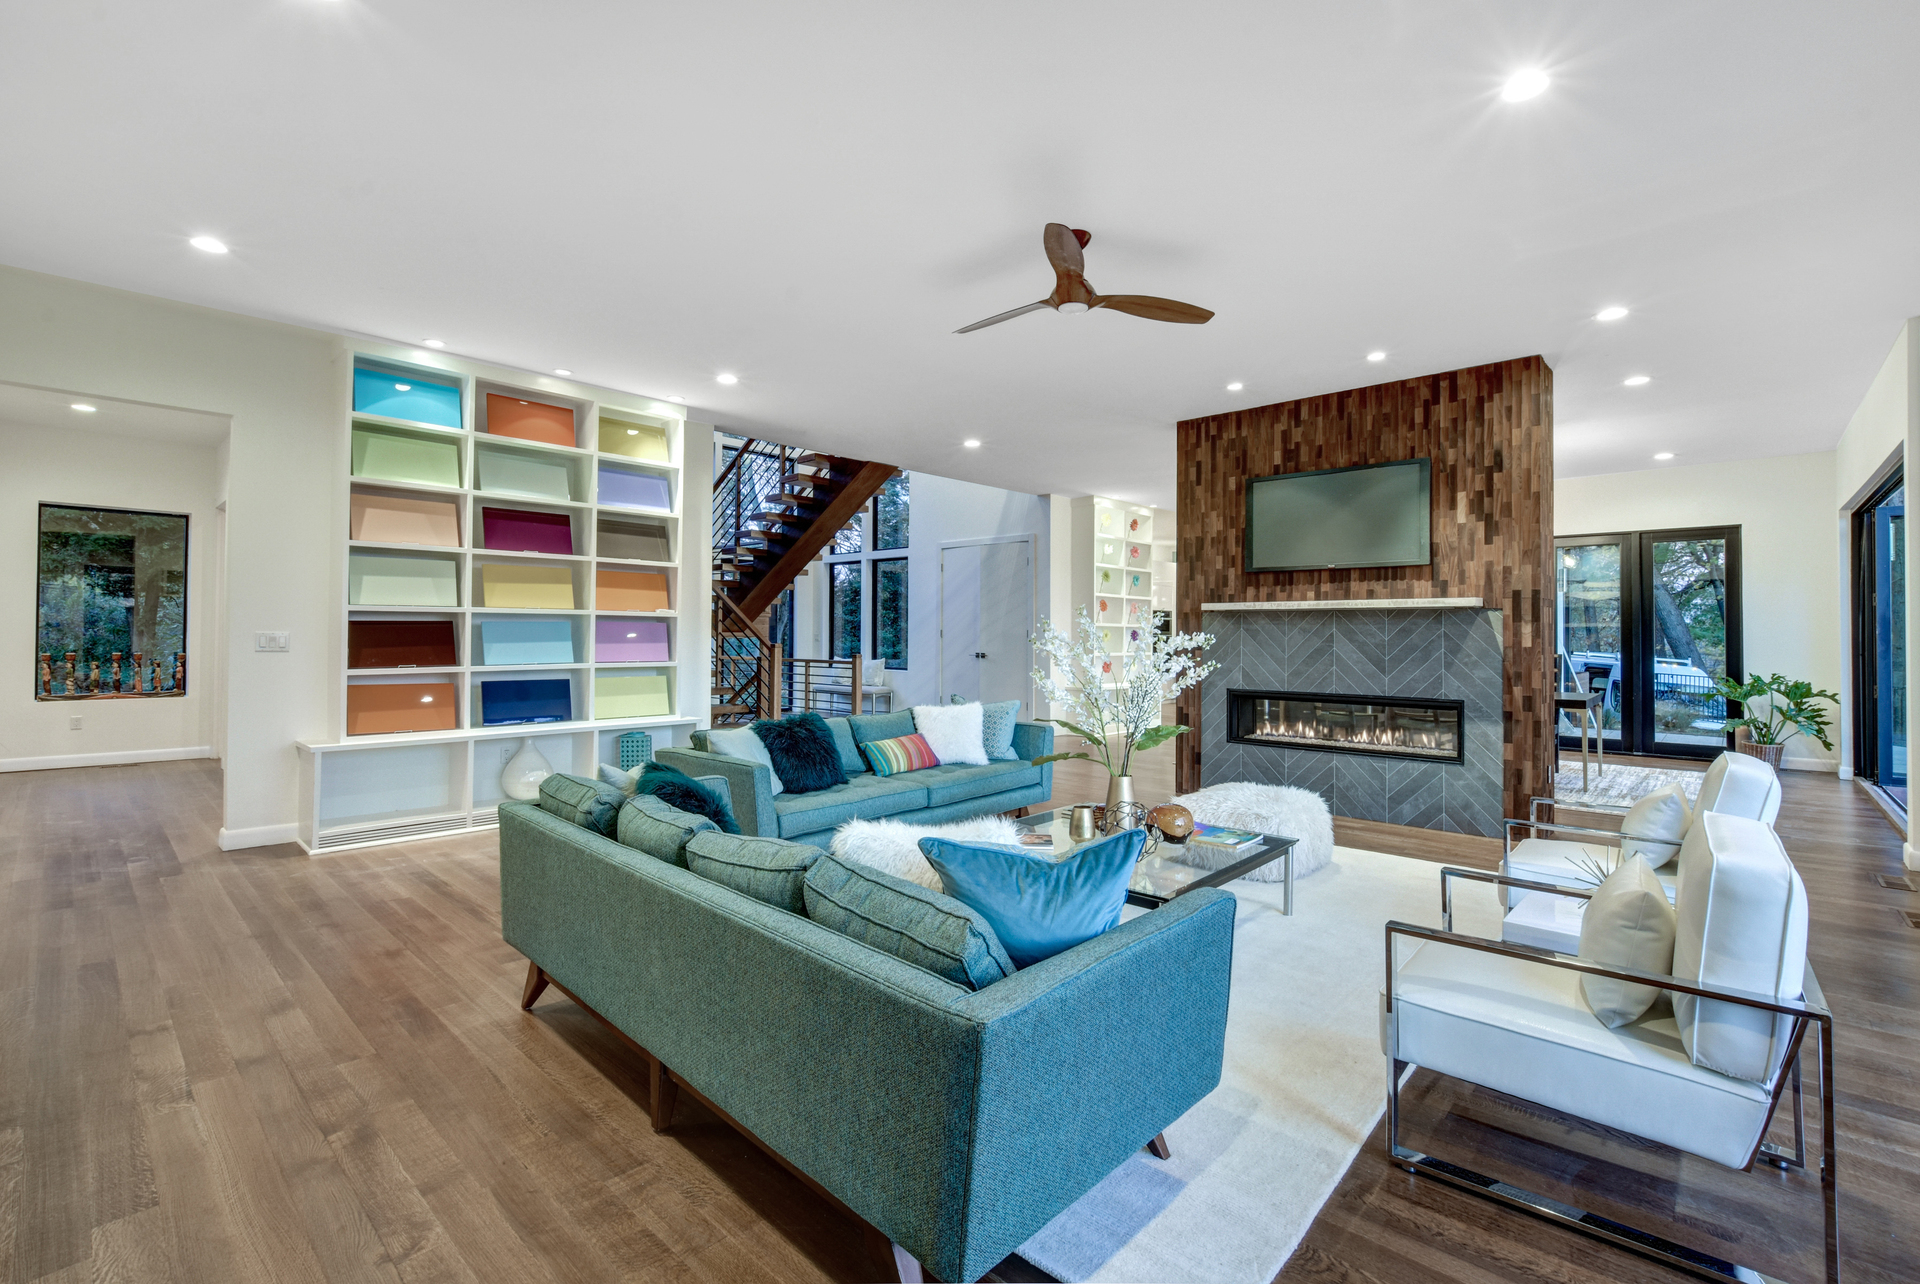 This New Jersey residence has a beautiful wood partition wall for the fireplace and tv.